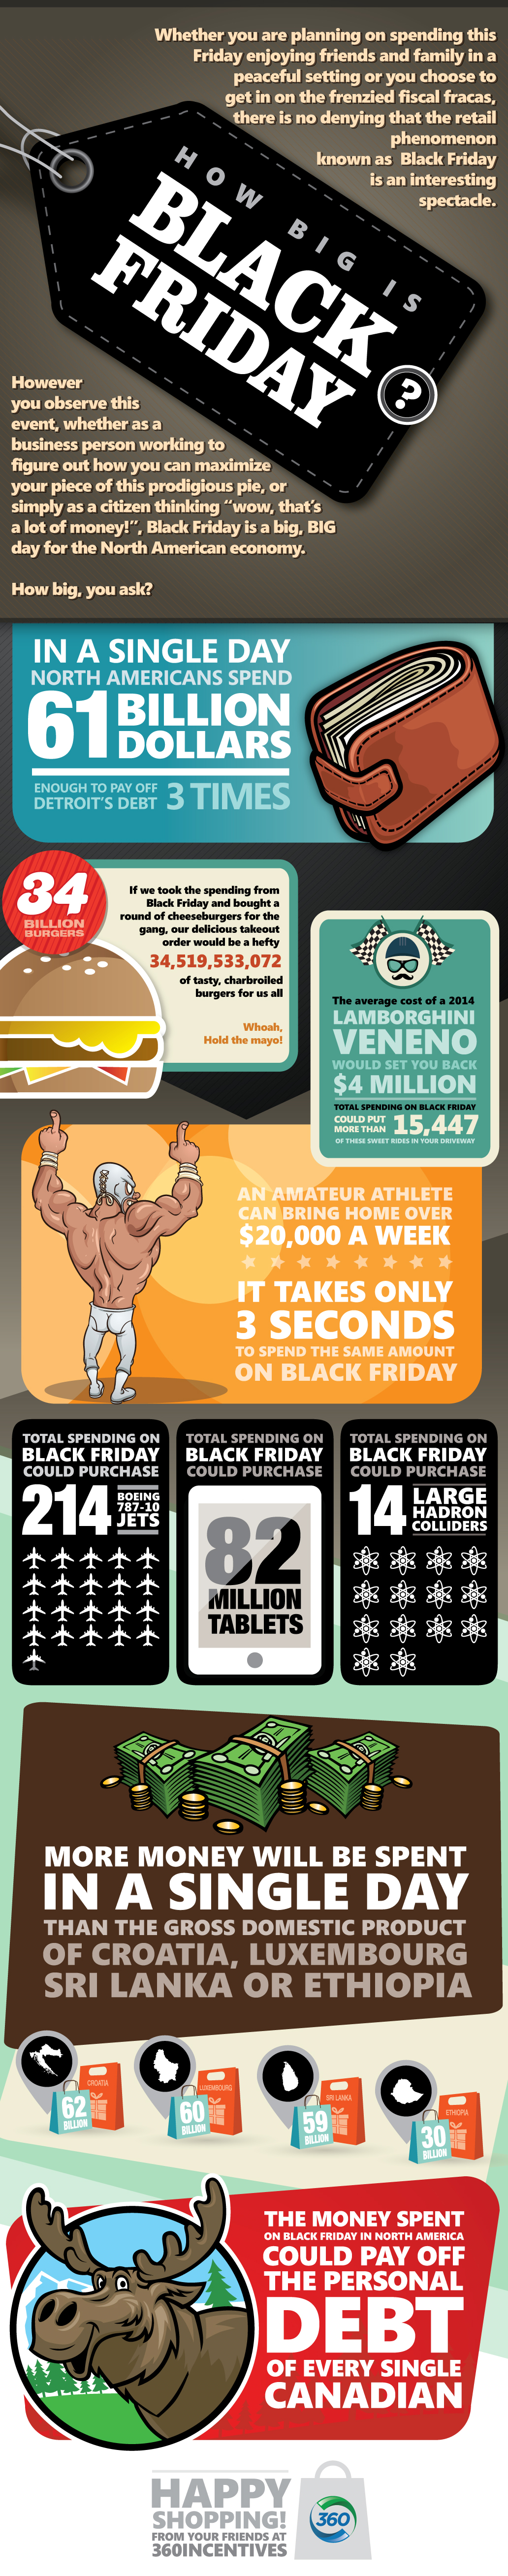 ---   Client: 360 Incentives Project: Canadian Black Friday Infographic Poster   Agency: Wilfred Kirby   Role: Creative Direction, Art Direction, Design